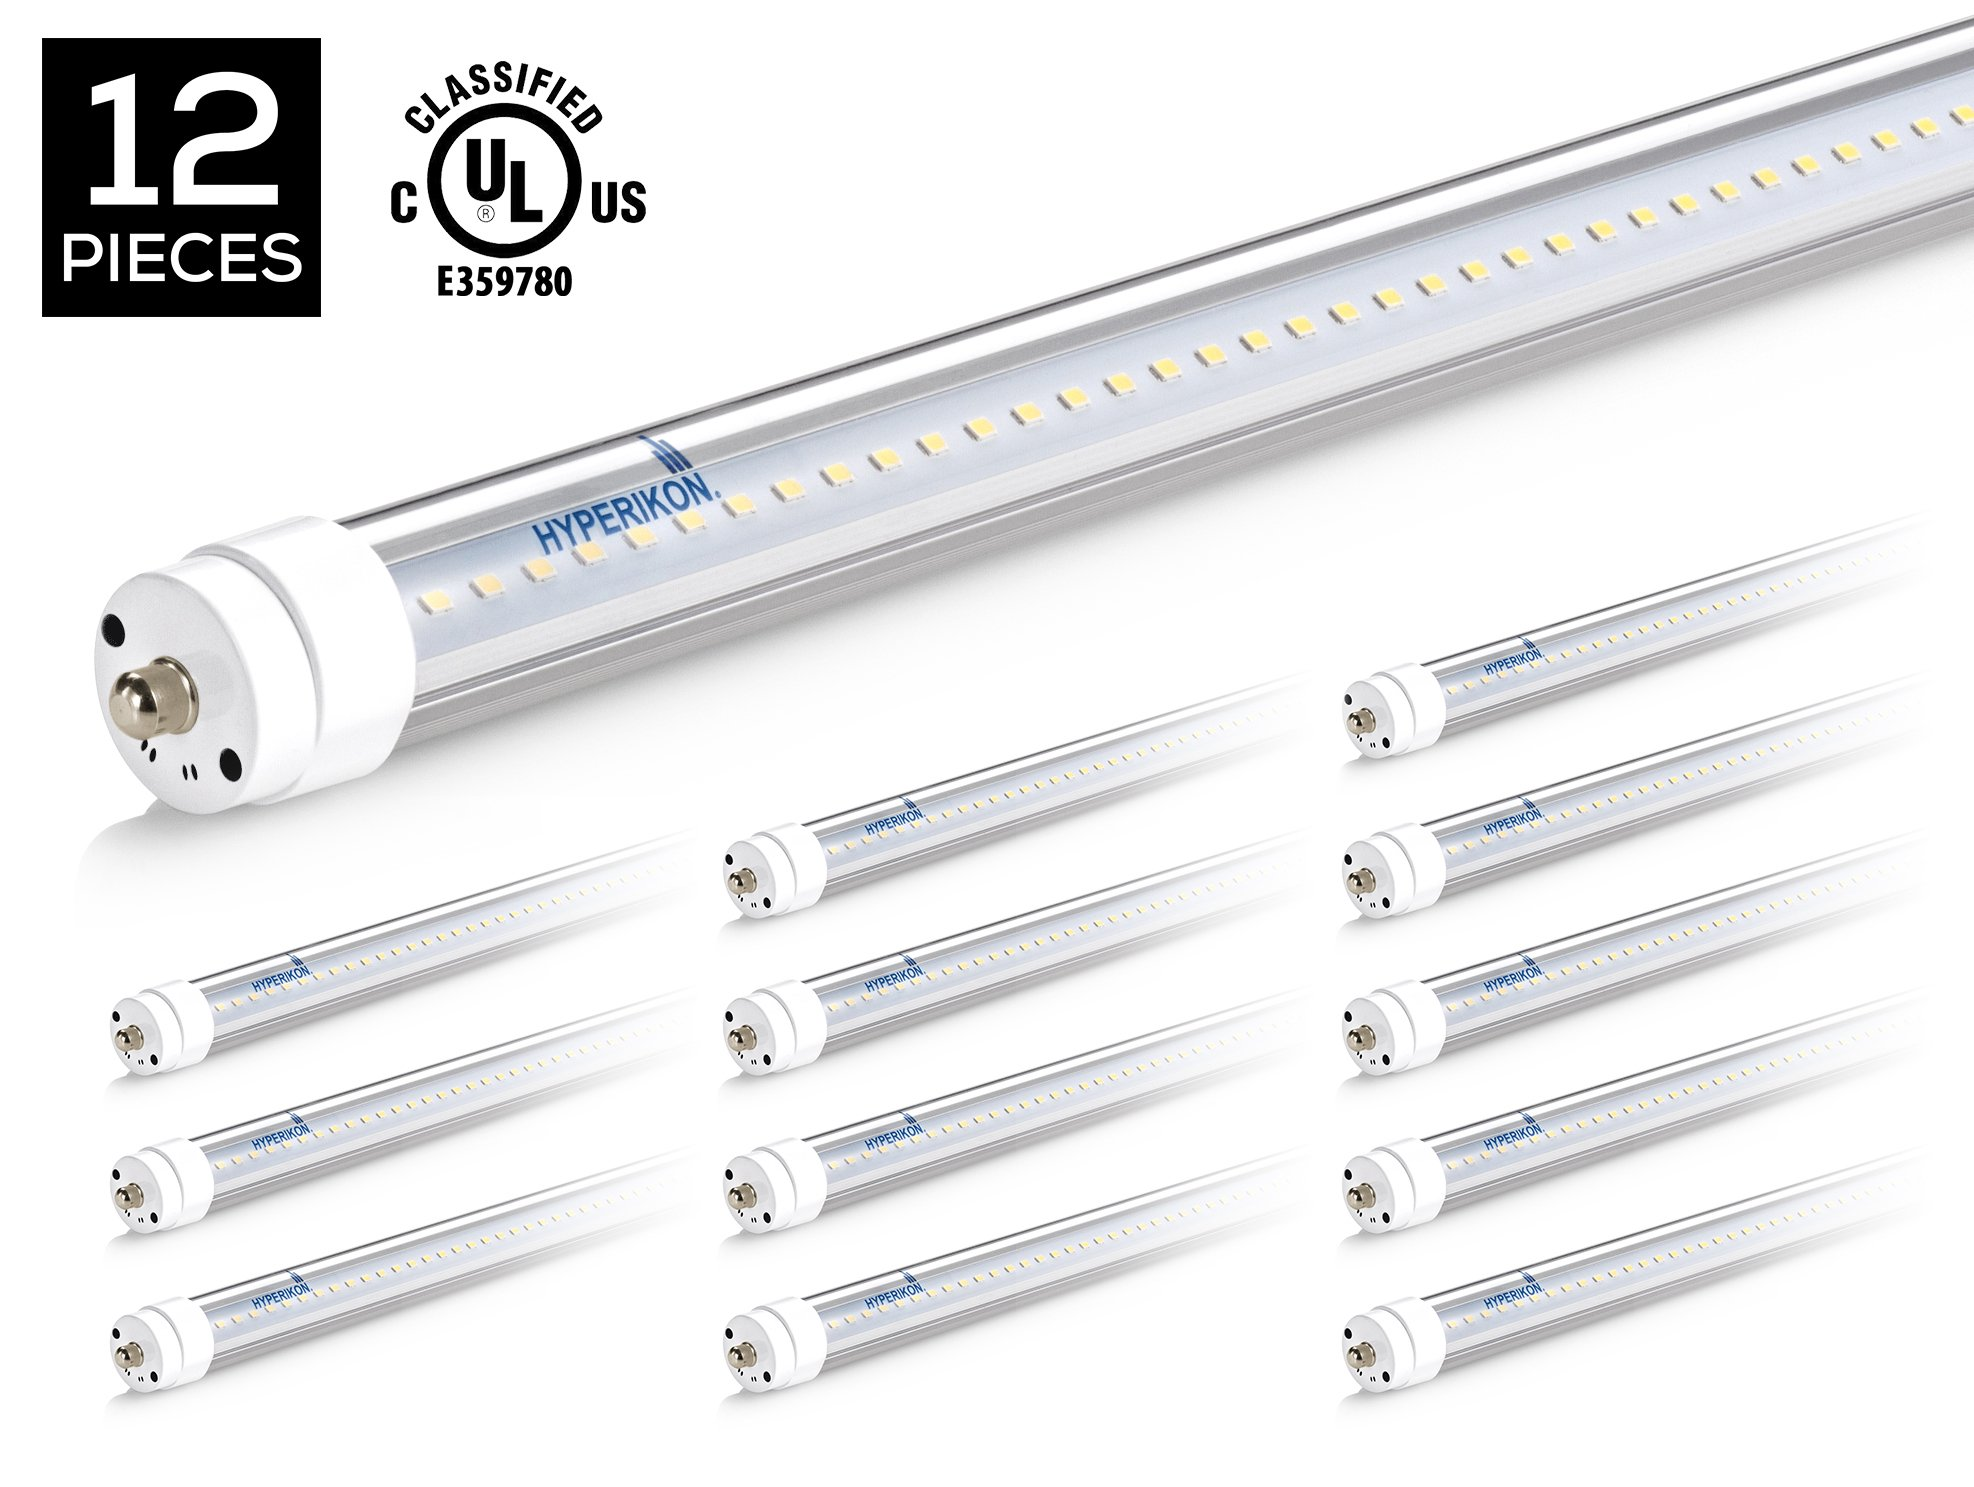 Hyperikon T8 T10 T12 8ft LED Tube Light, 36W (75W Equiv.), Dual-End Powered, Ballast Bypass, Shatterproof, Fluorescent Replacement, 5000k, Clear, 4400 Lumens, Workshop, Warehouse, Garage - 12 Pack by Hyperikon (Image #1)